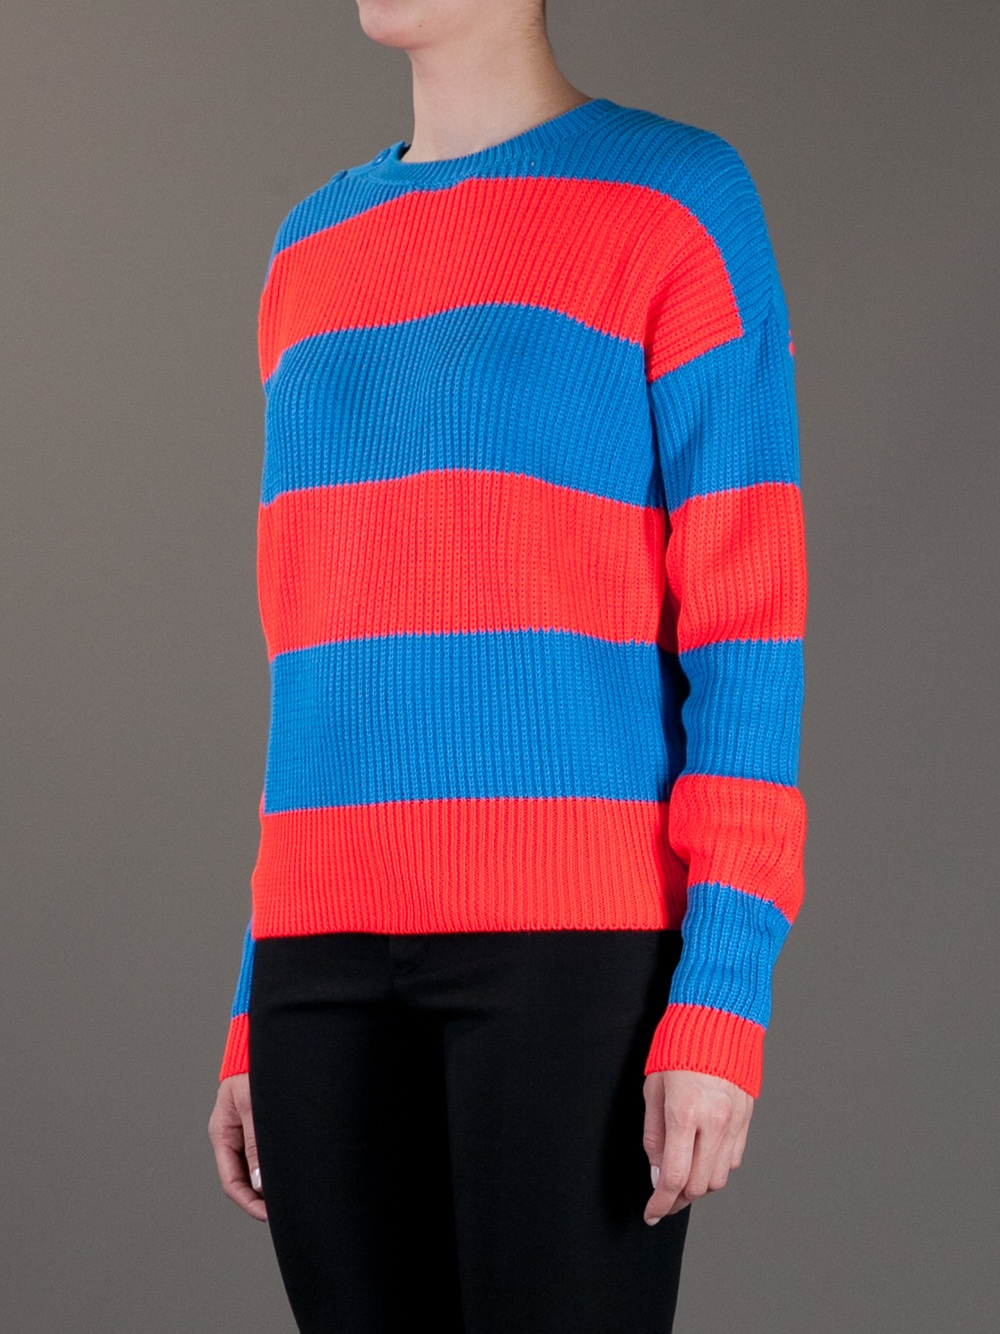 Lacoste l!ive Bold Striped Sweater in Red | Lyst